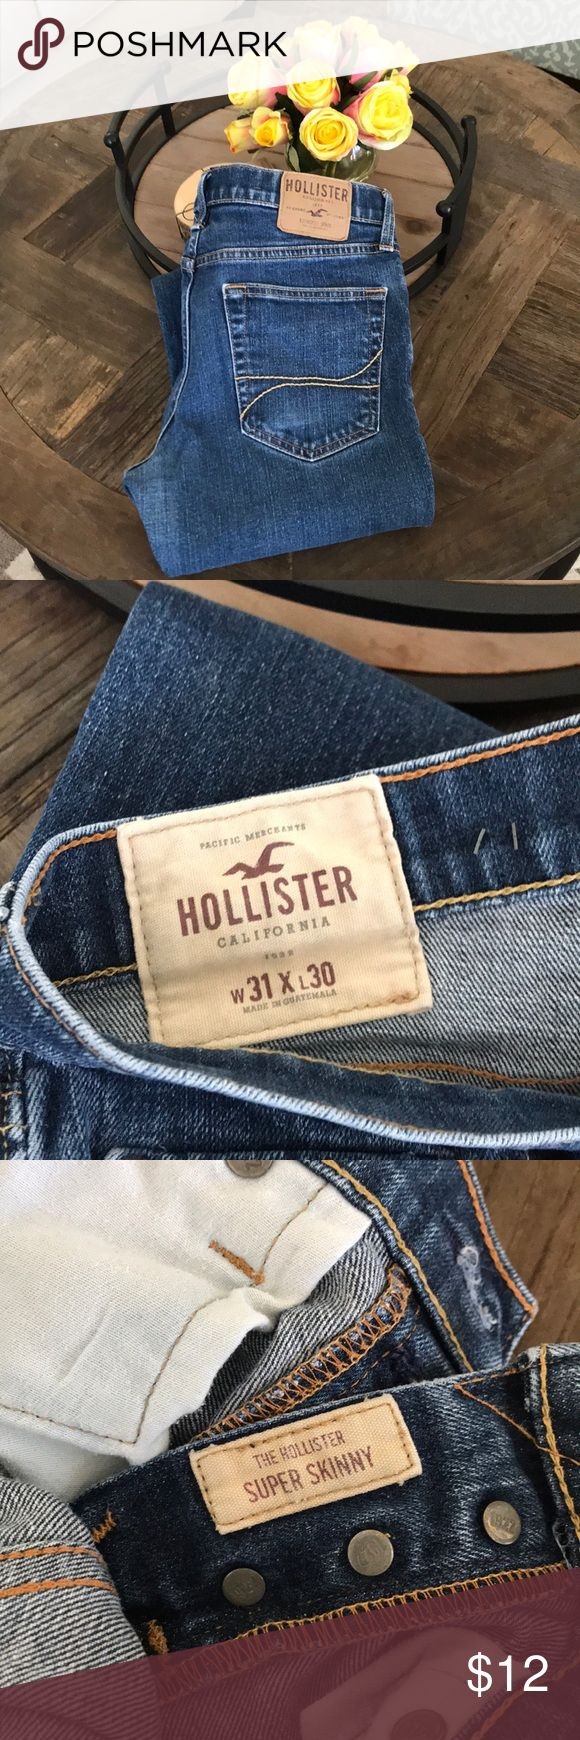 Hollister Men's 31x30 Super Skinny Denim Jeans Hollister Men's 31x30 Super Skinny Denim Jeans. Has been worn, just some scuff marks at the heels from wearing them with winter boots. These jeans fit and feel amazing and the denim forms to your body once you put them on. It's like magic! Hollister Jeans Skinny